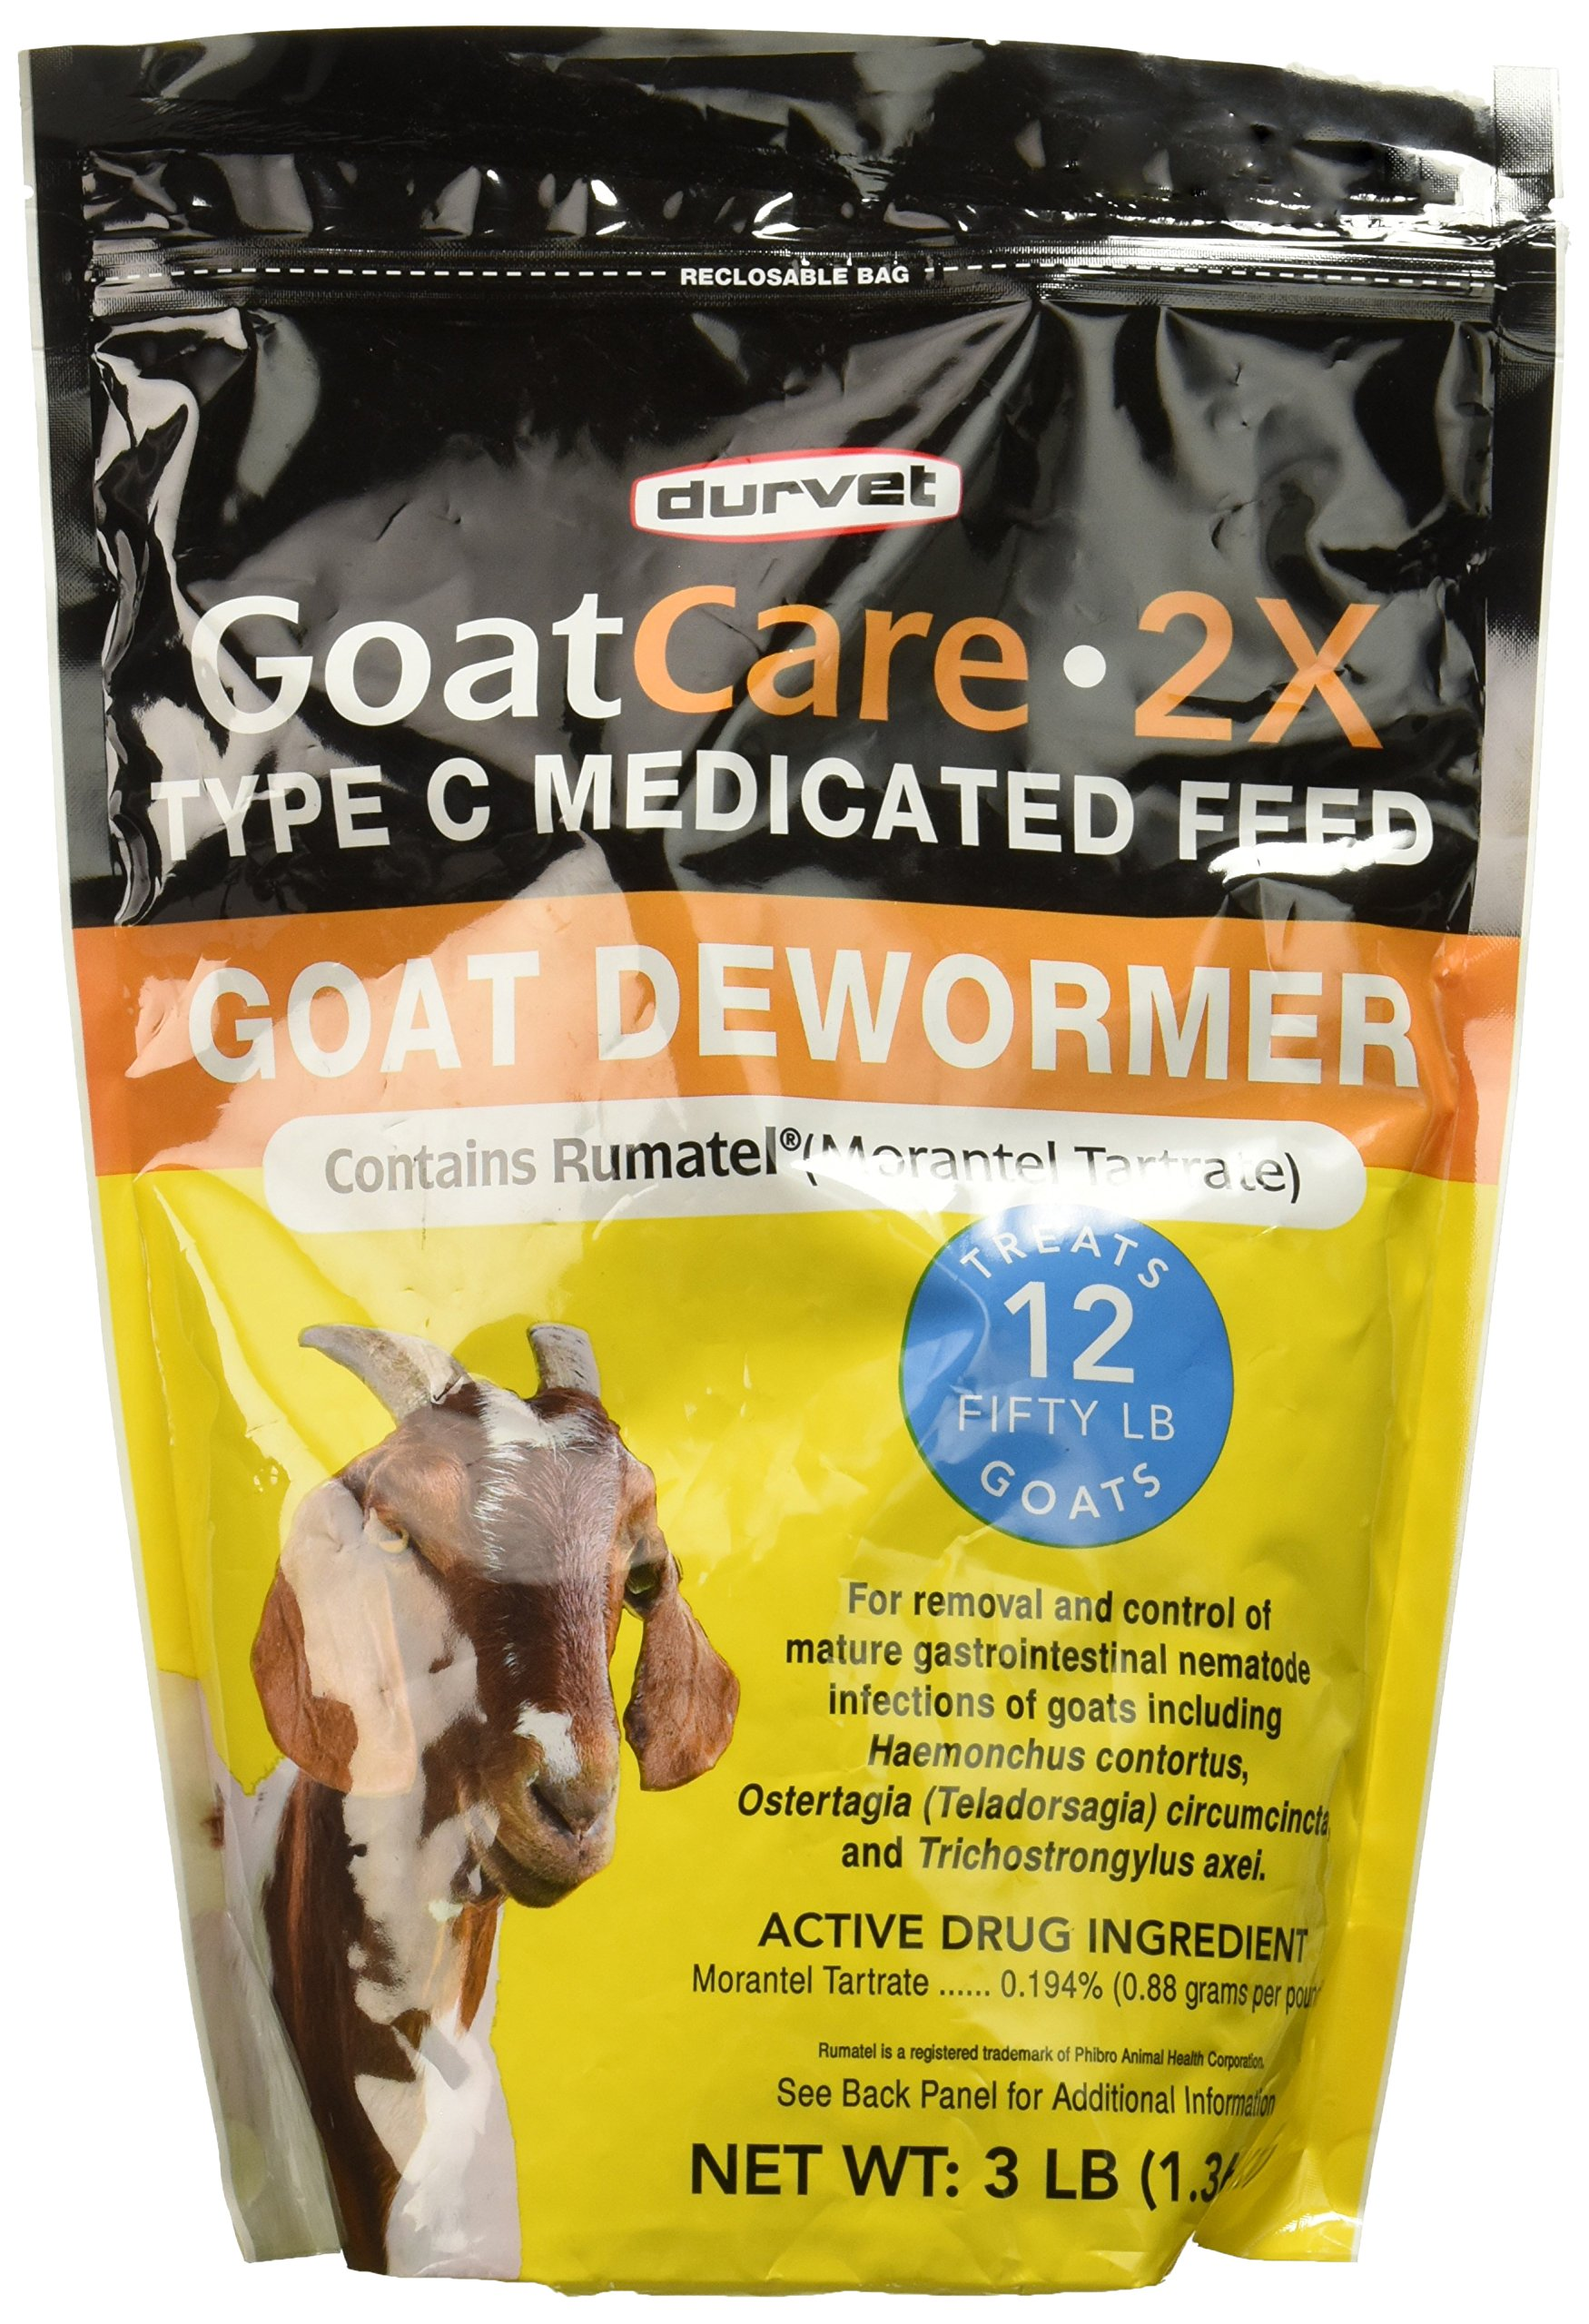 Goat Care 2X Medicated Pellets, Goat Dewormer, 3 Pound Package - Part #: 001-0311